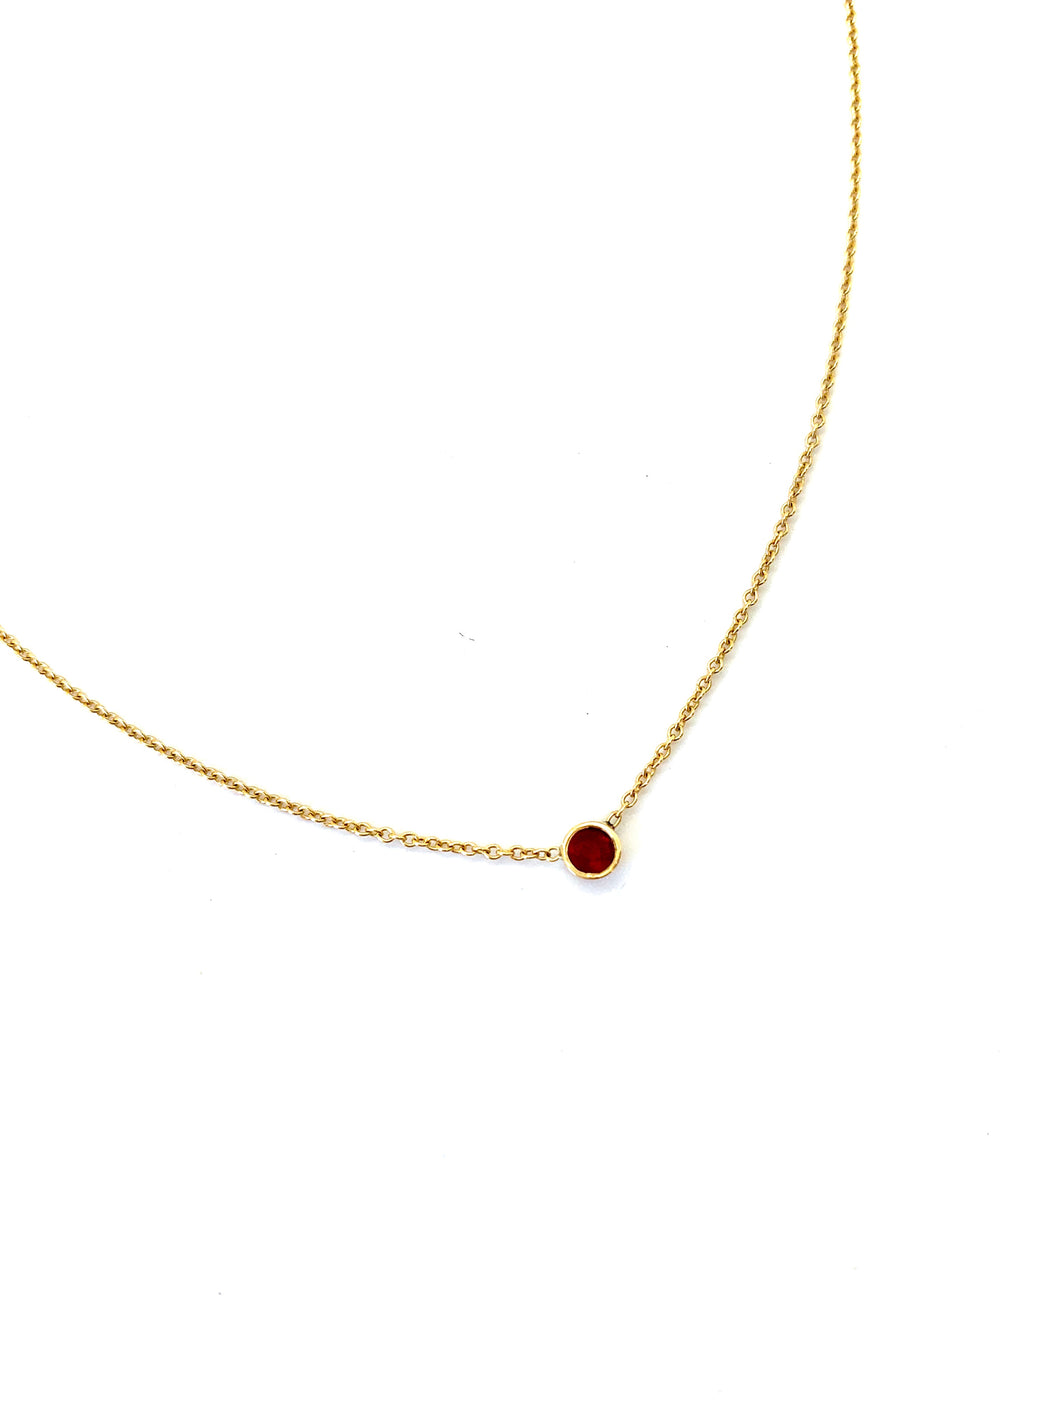 Connect to root chakra energy for rooting, grounding & balance with our ruby energy necklace. Materials include a 16-inch 14k yellow gold chain with a 3mm ruby gemstone. These necklaces are custom designed and hand assembled in the US. Custom variations are available by Contacting Us.